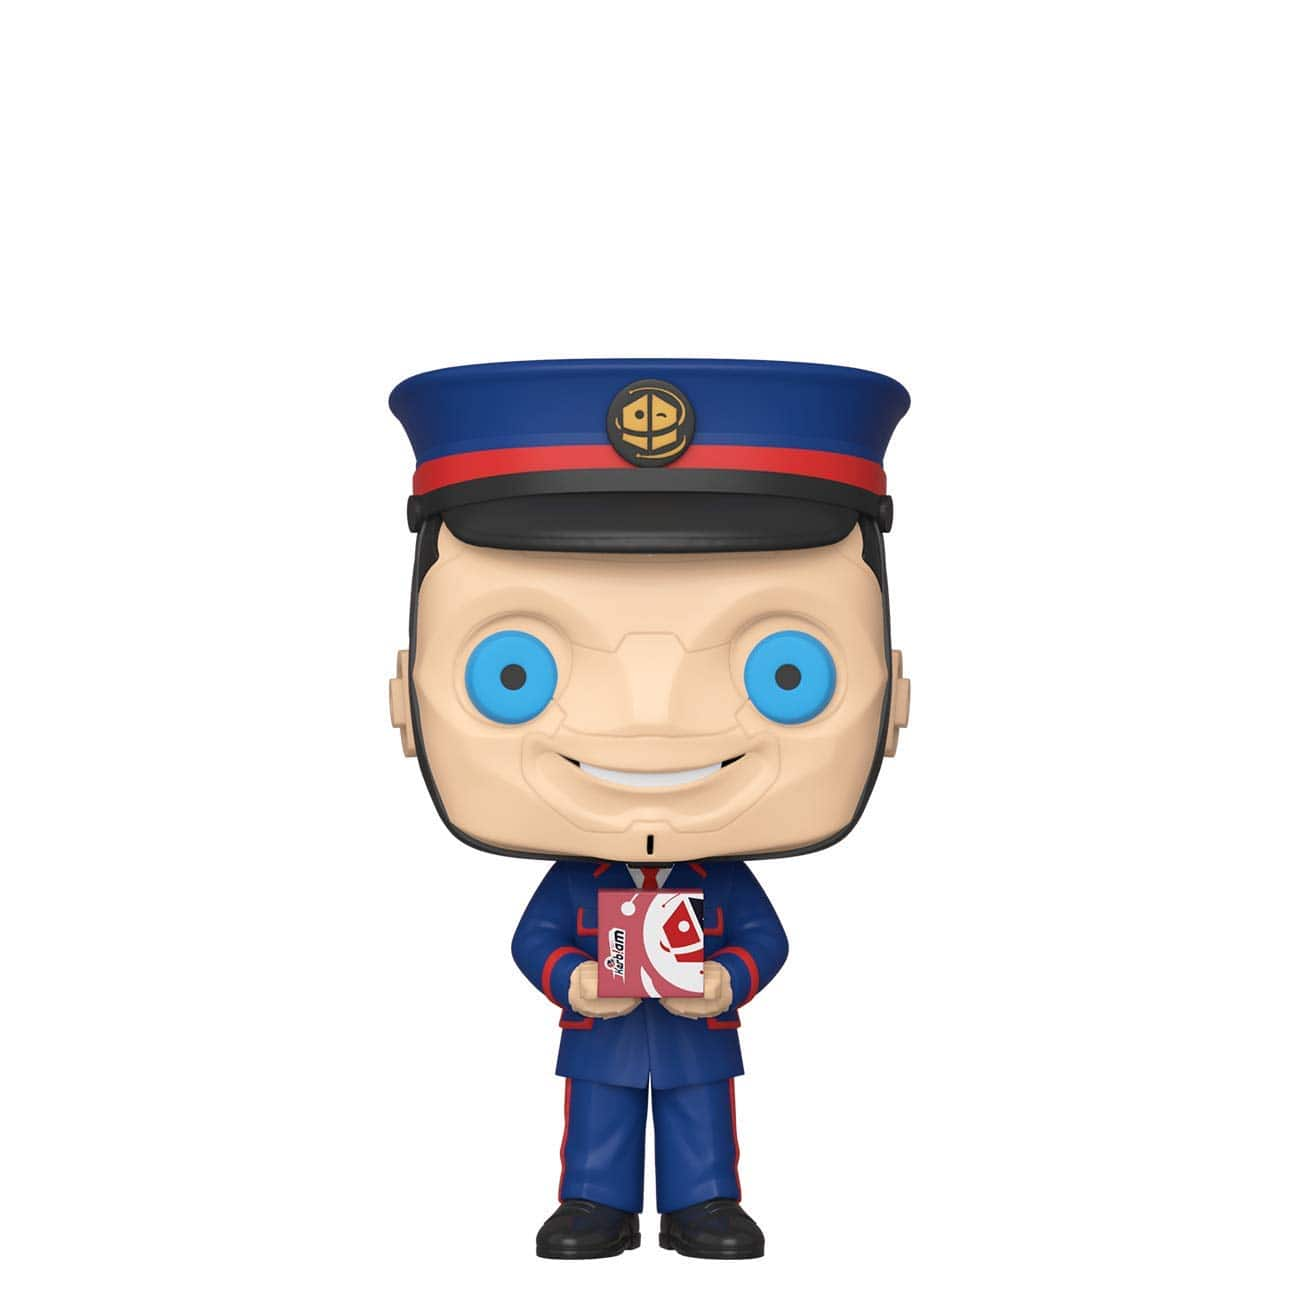 Funko POP! TV: Doctor Who - The Kerblam Man $4 + Free Shipping w/ Prime or on orders $25+